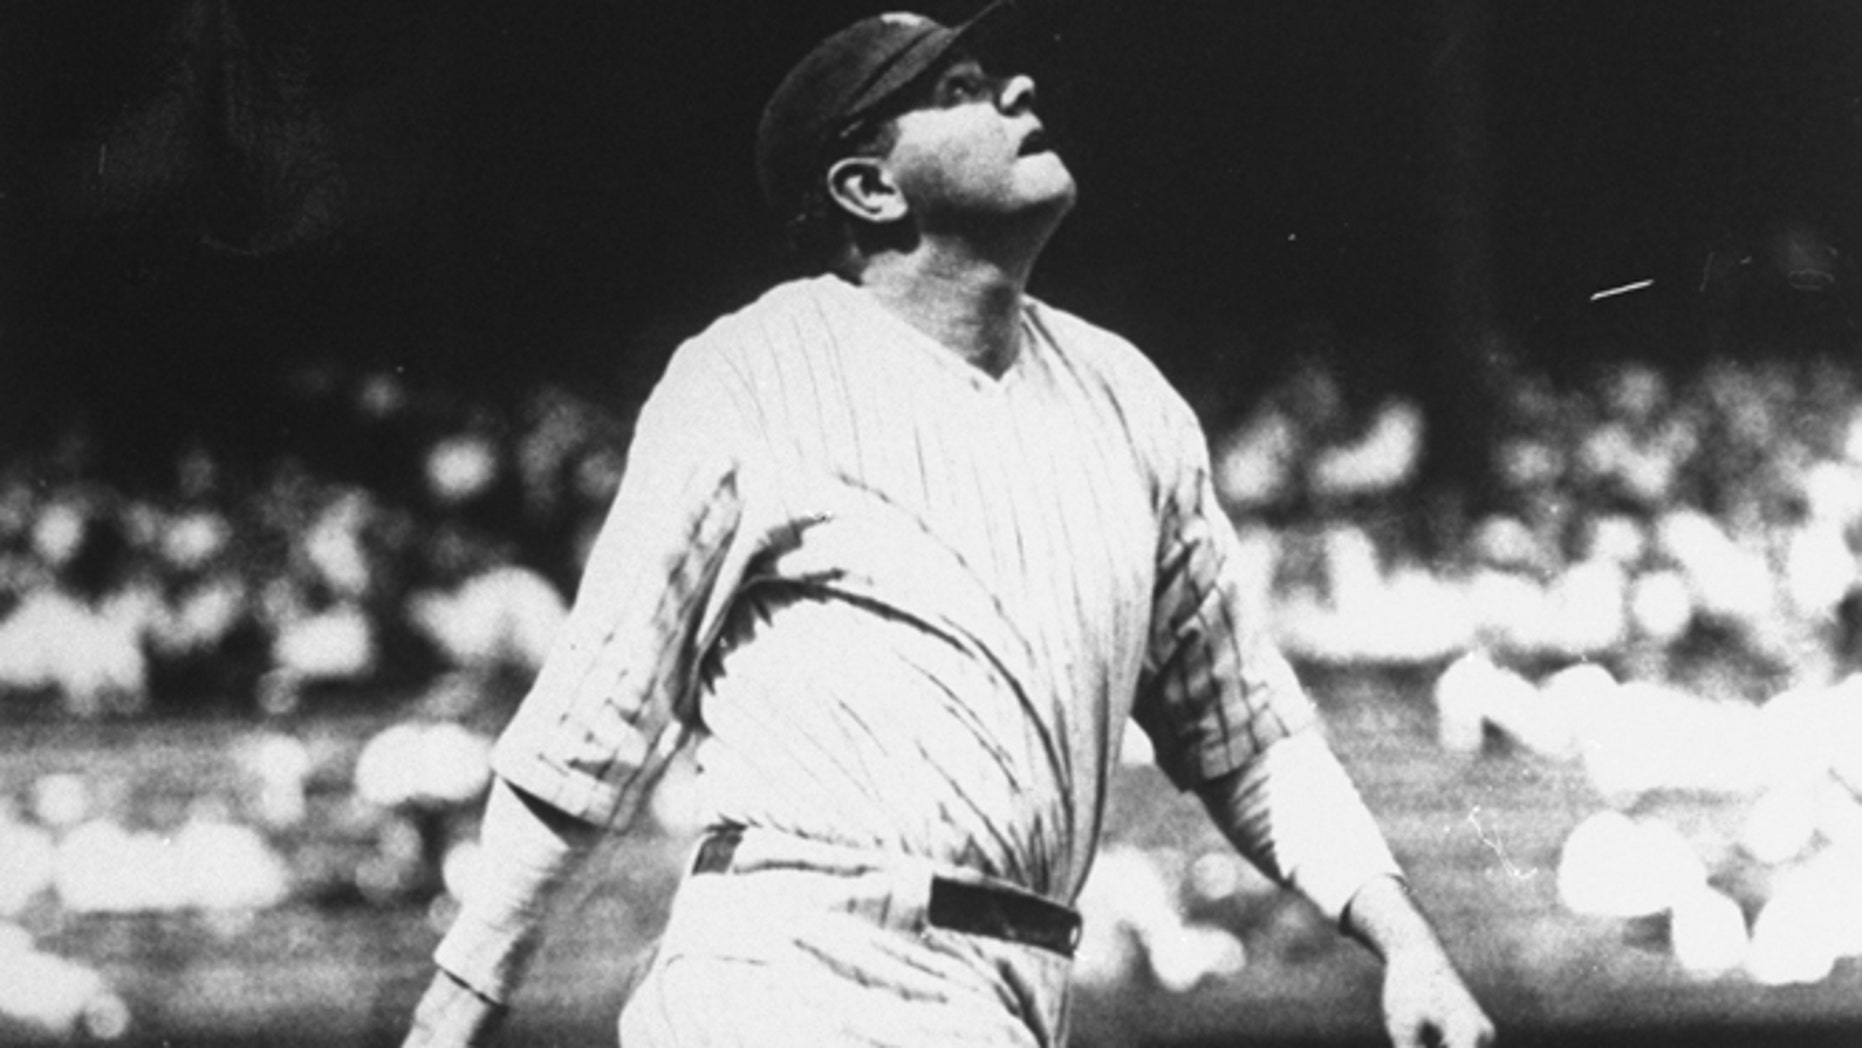 FILE 1927: Babe Ruth lofts another home run into the right field upper deck at Yankee Stadium in New York on the way to his 60-home run year.